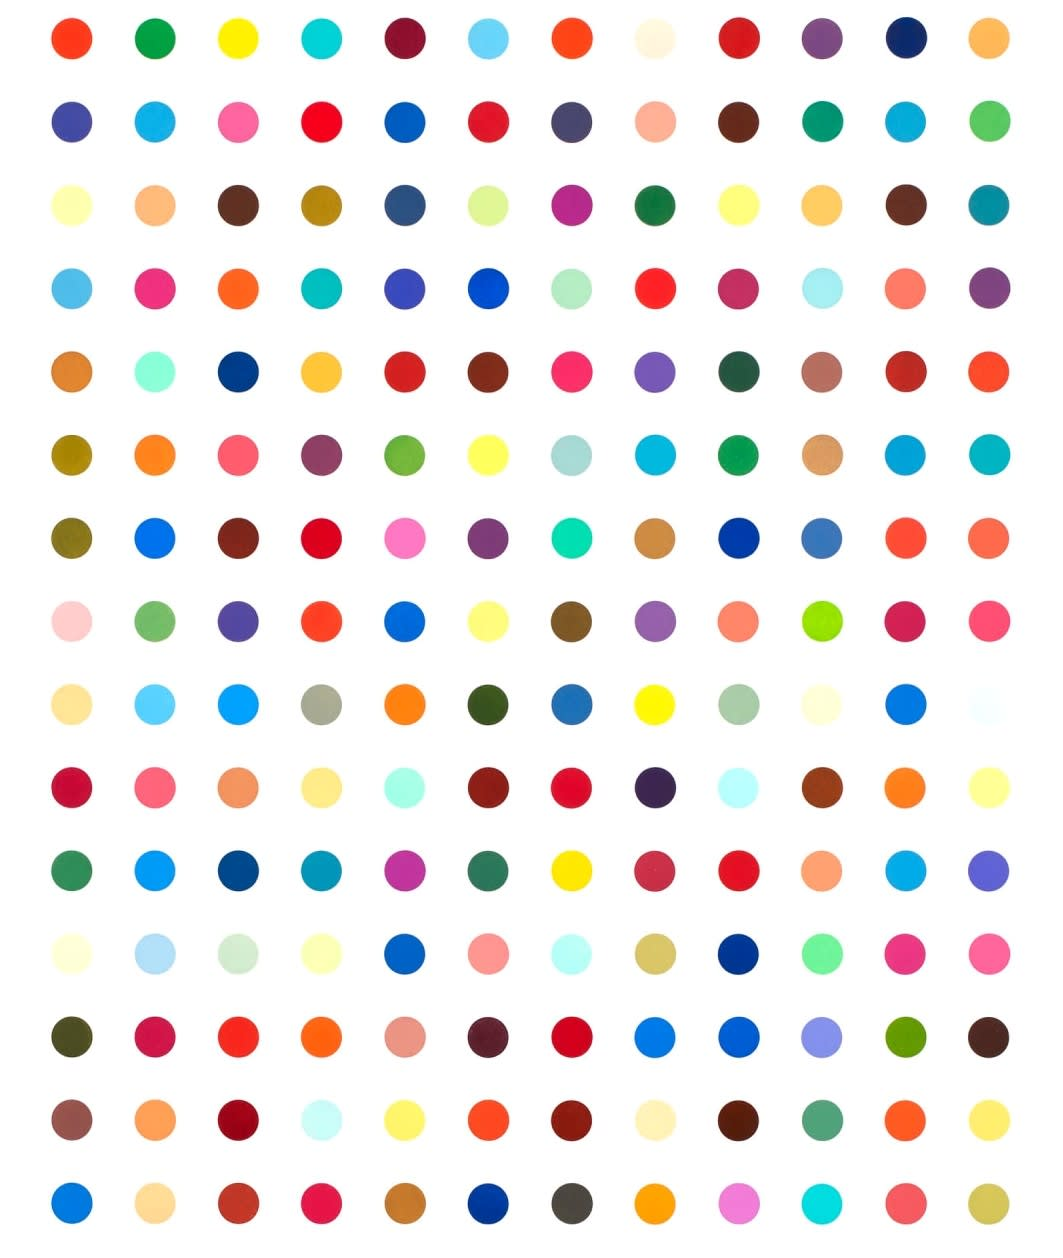 10 Things You Didn't Know About Damien Hirst